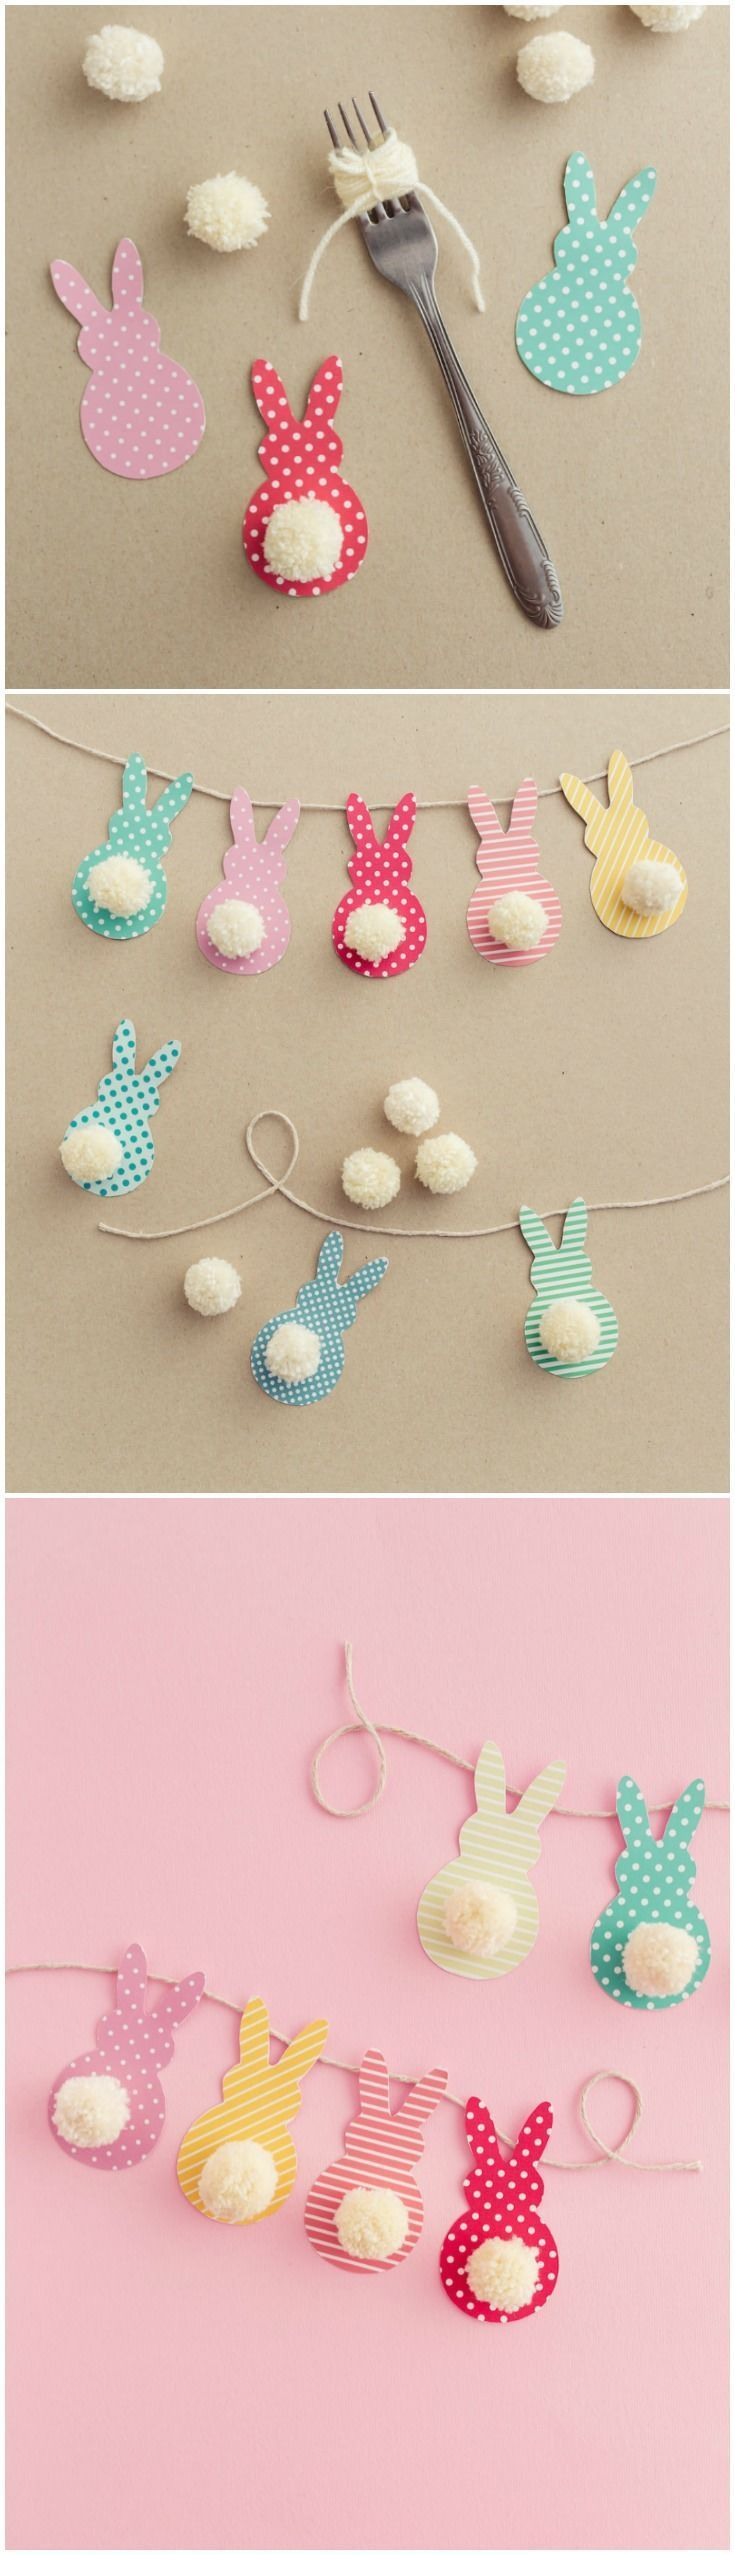 This colorful Easter garland is so easy to make with scrapbook paper and yarn! Both kids and adults will love making this together.  via @diy_candy #DIYArtsandCrafts #scrapbookprintables